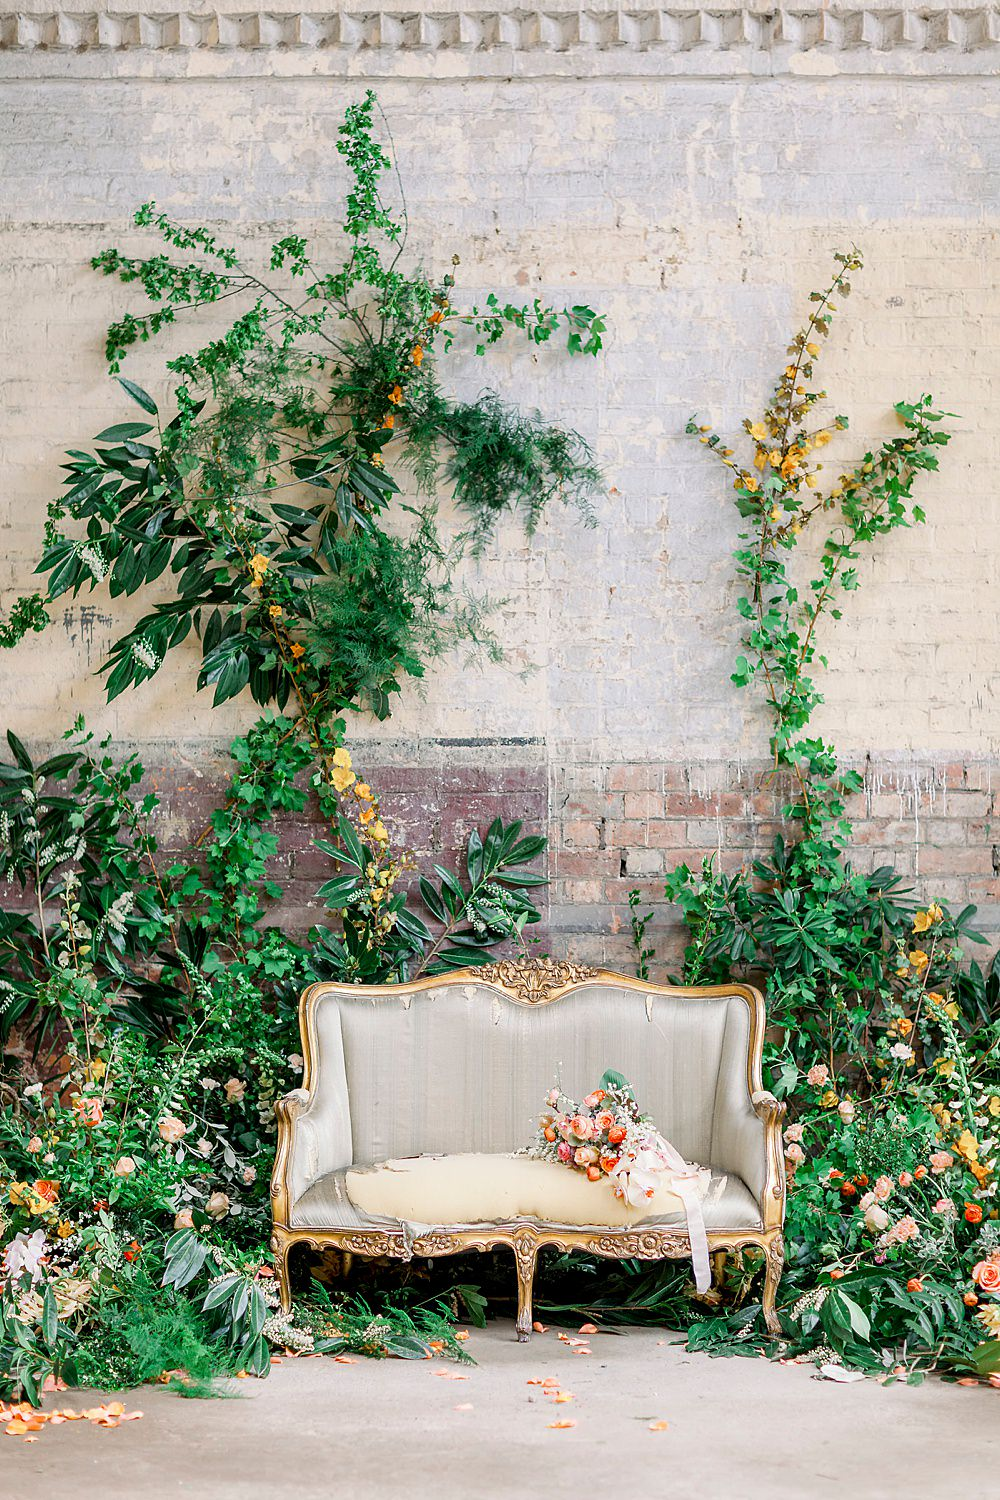 Backdrop Greenery Foliage Wall Installation Flowers Natural Boho Industrial Wedding Ideas Jo Bradbury Photography